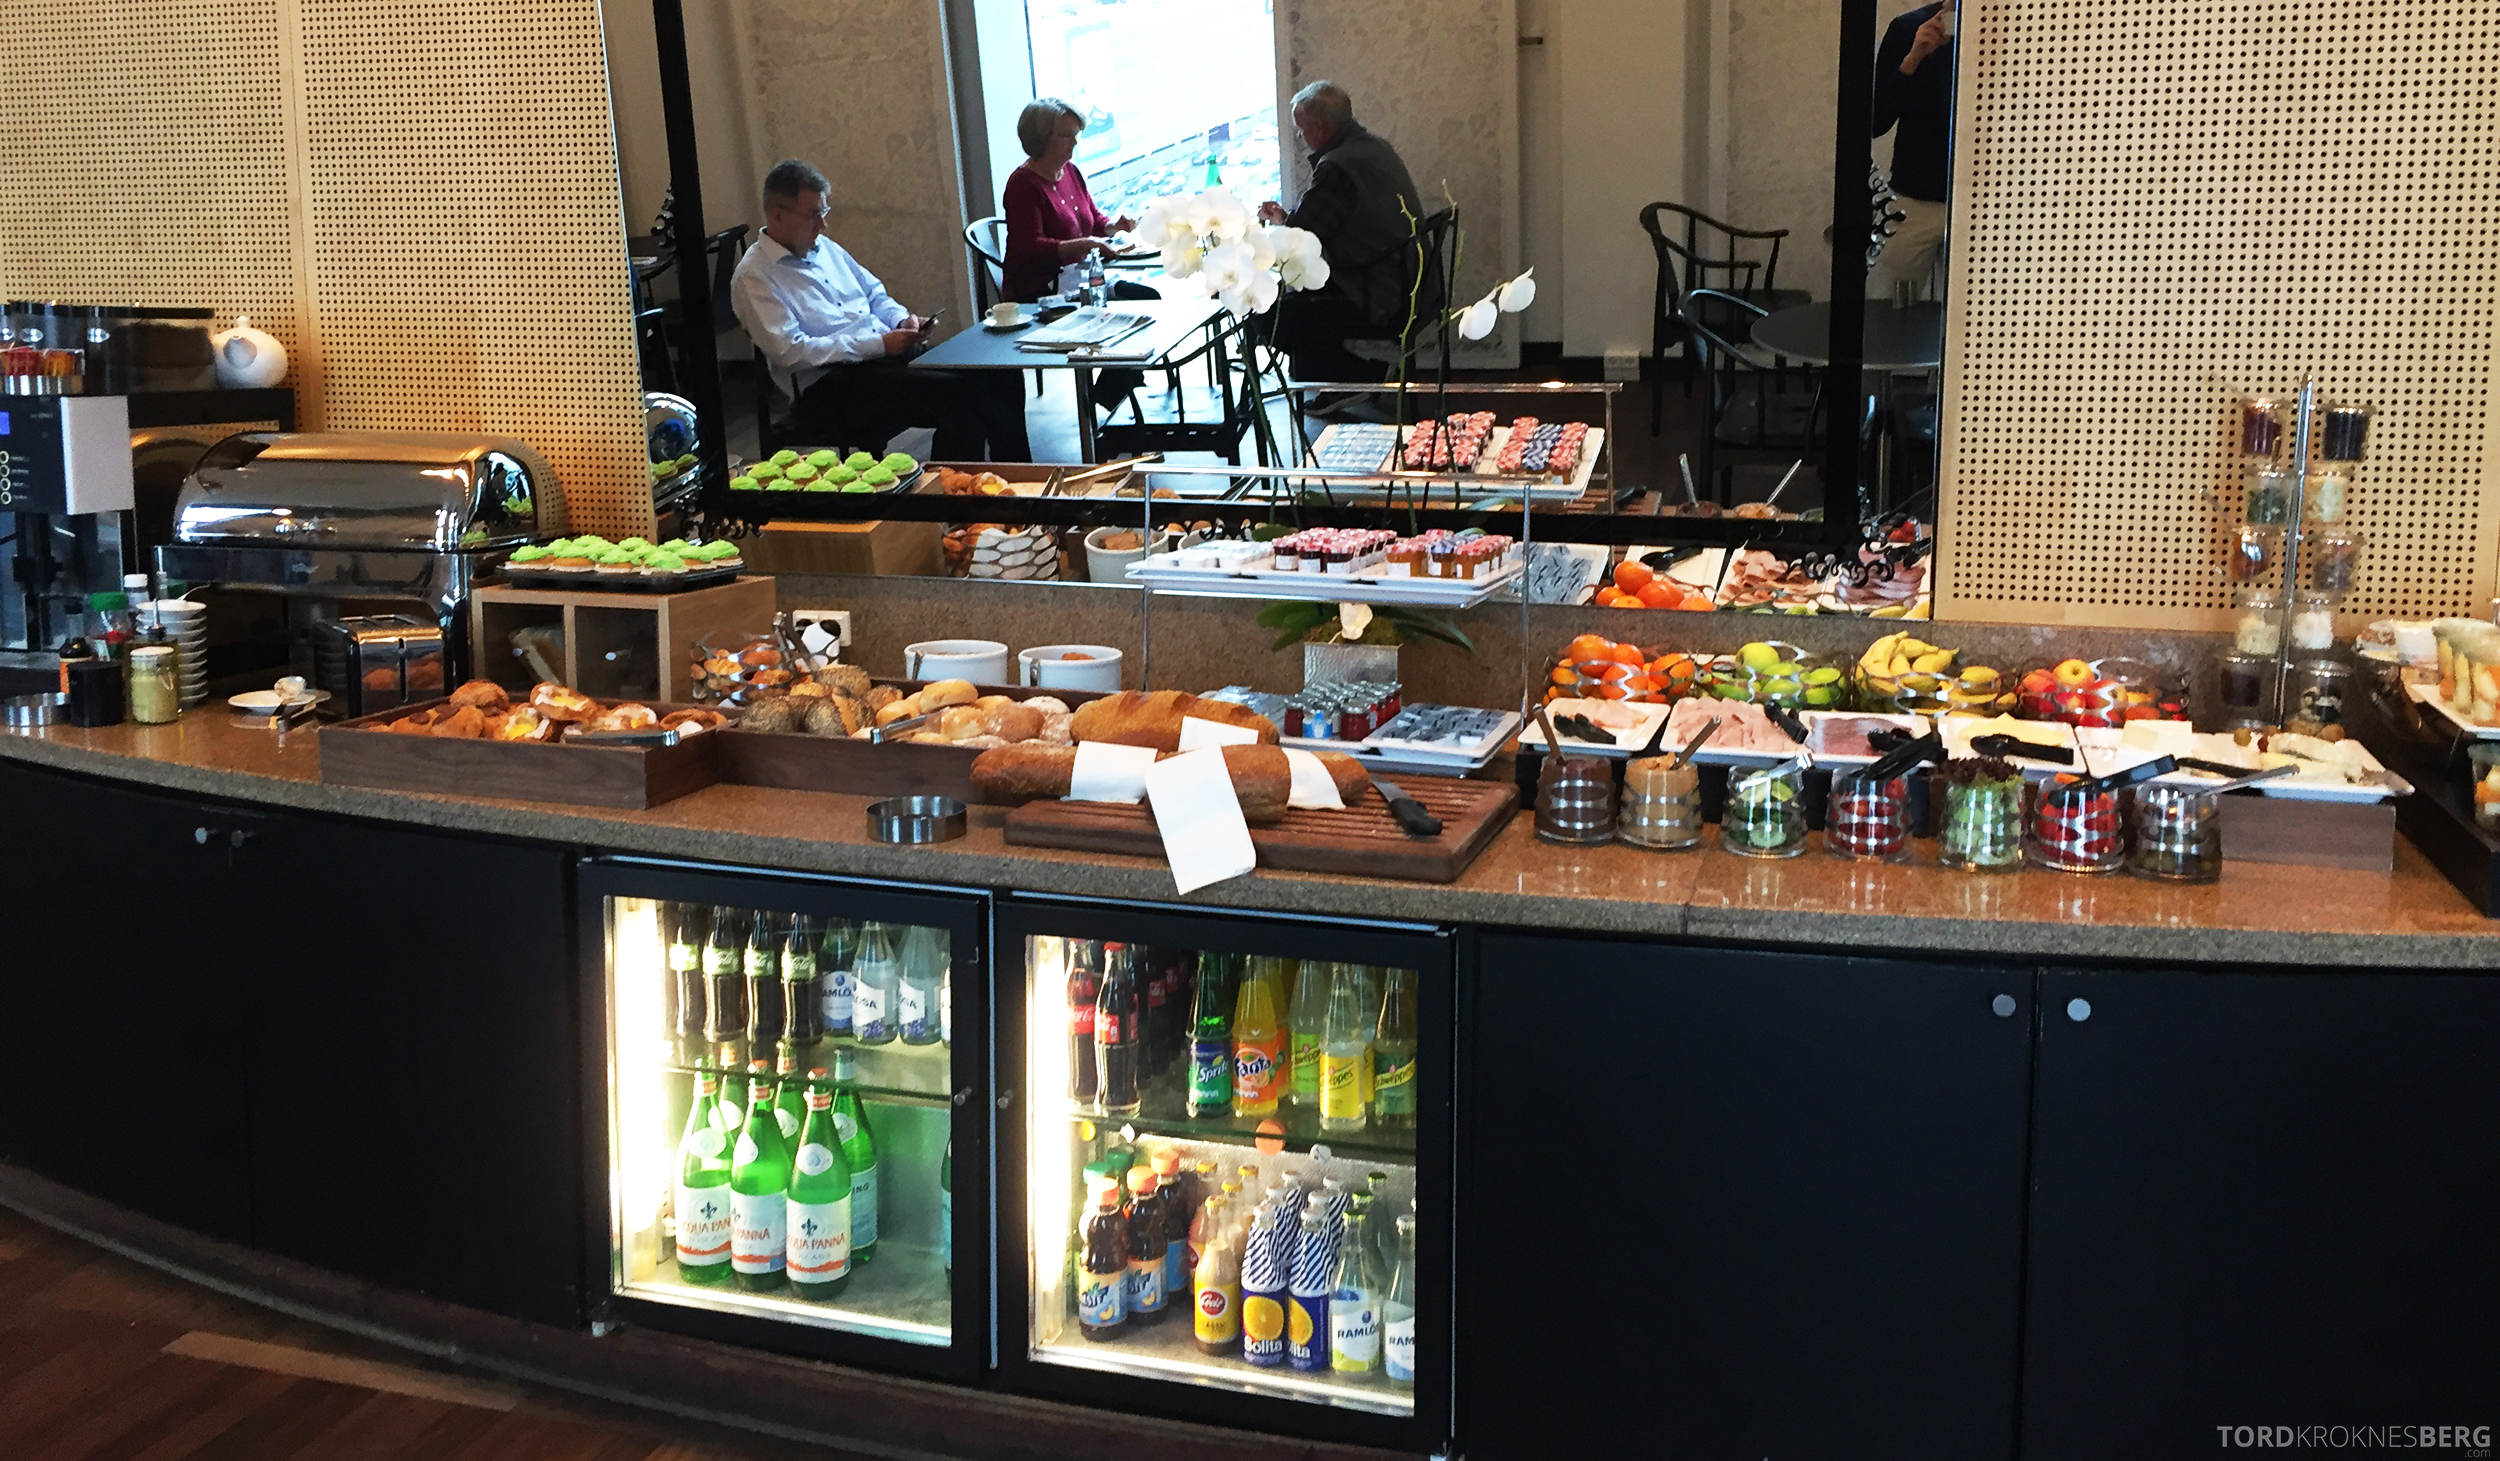 Hilton Copenhagen Executive Lounge buffet